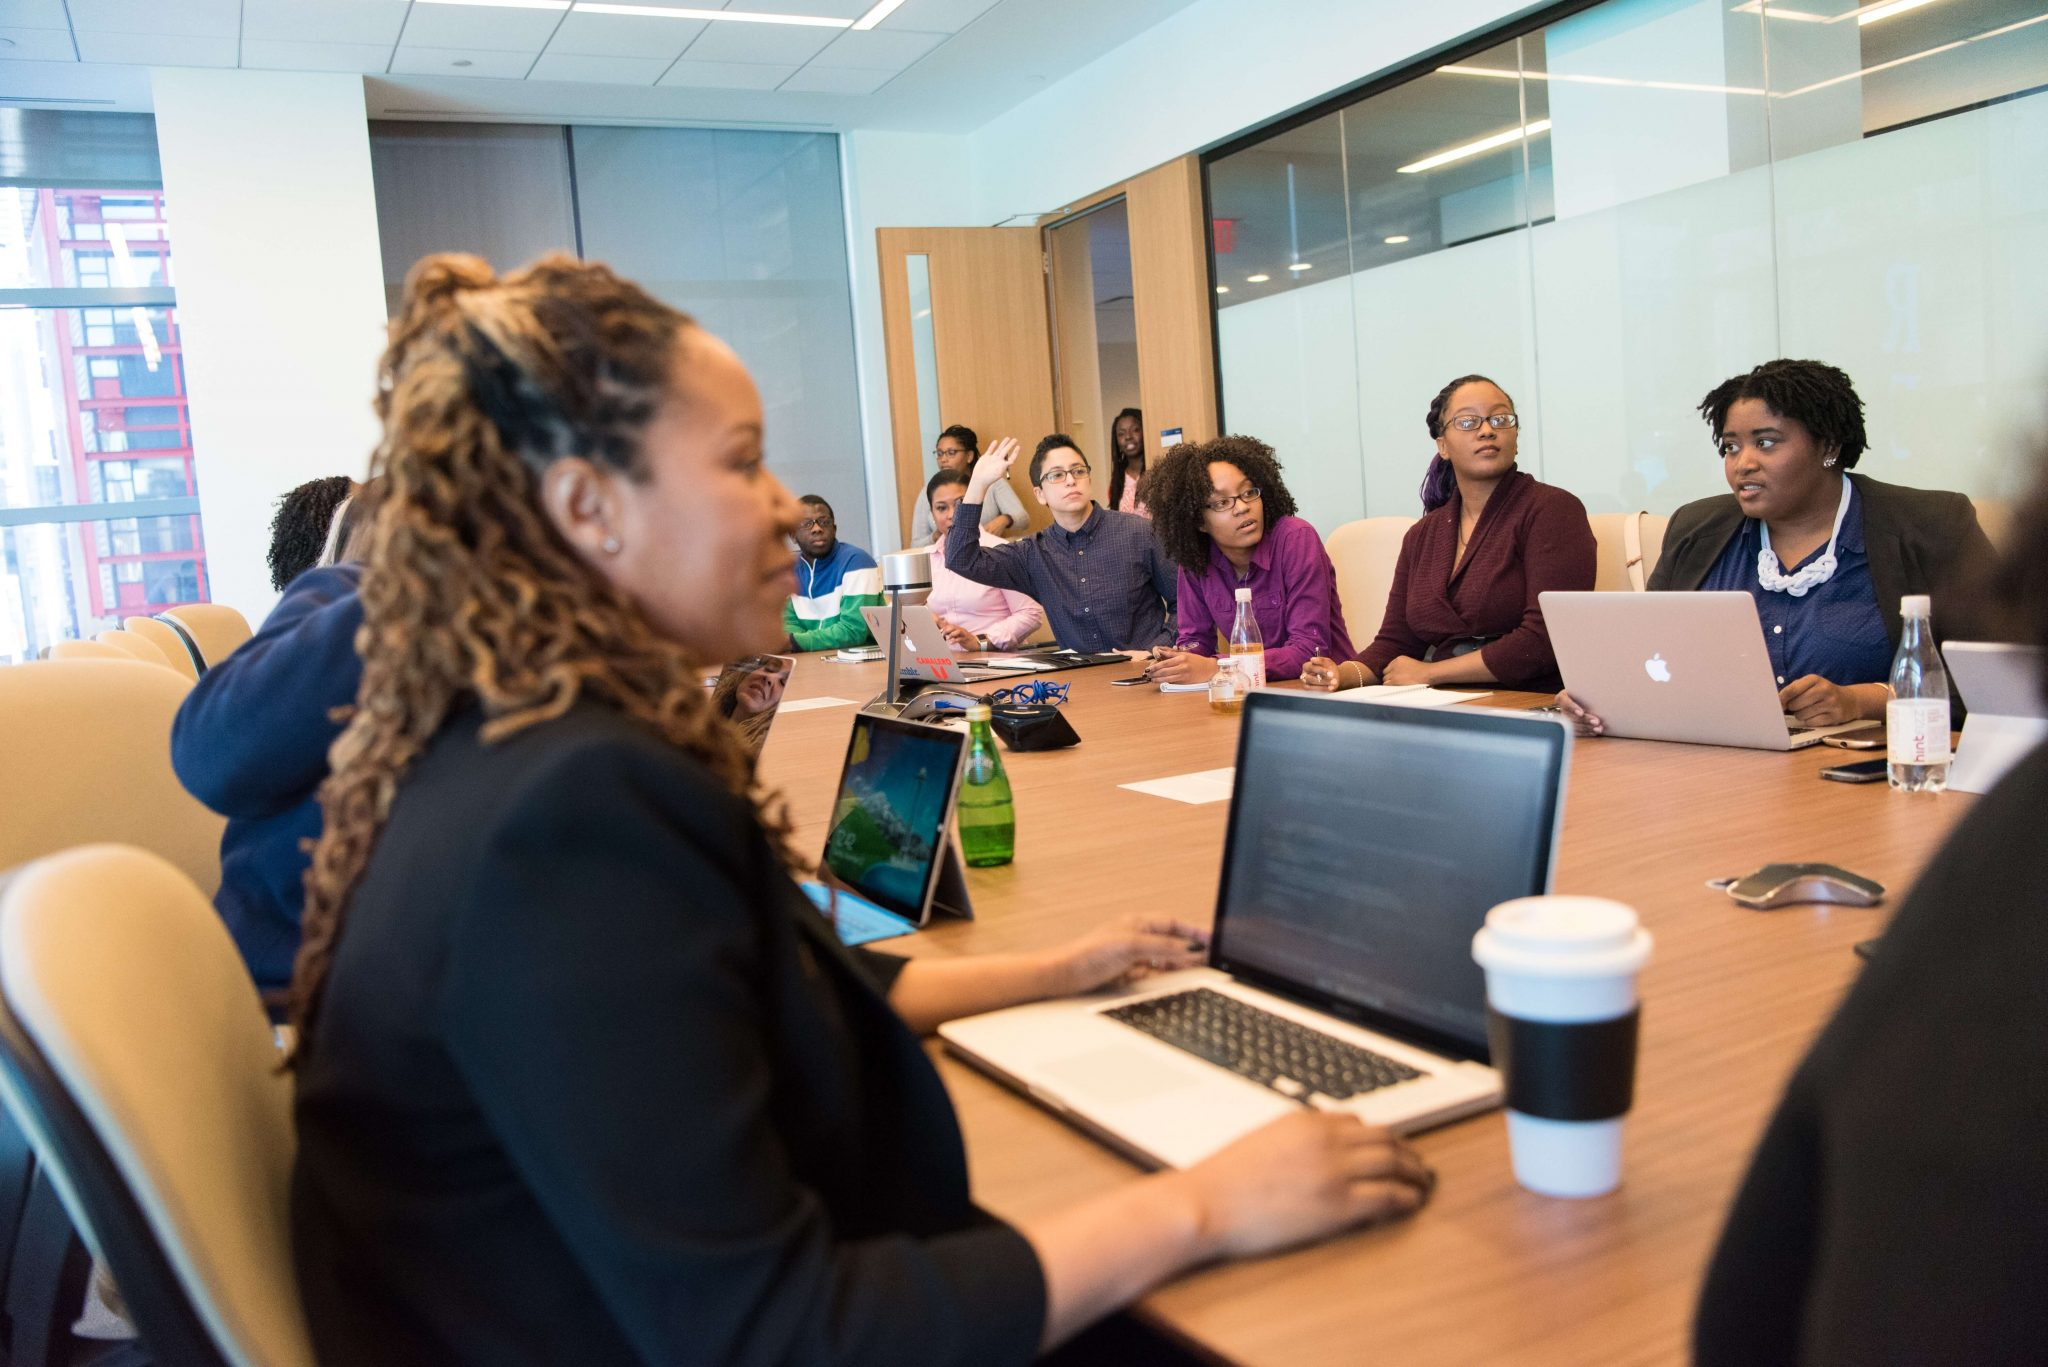 Why off-site meetings are good for employee engagement